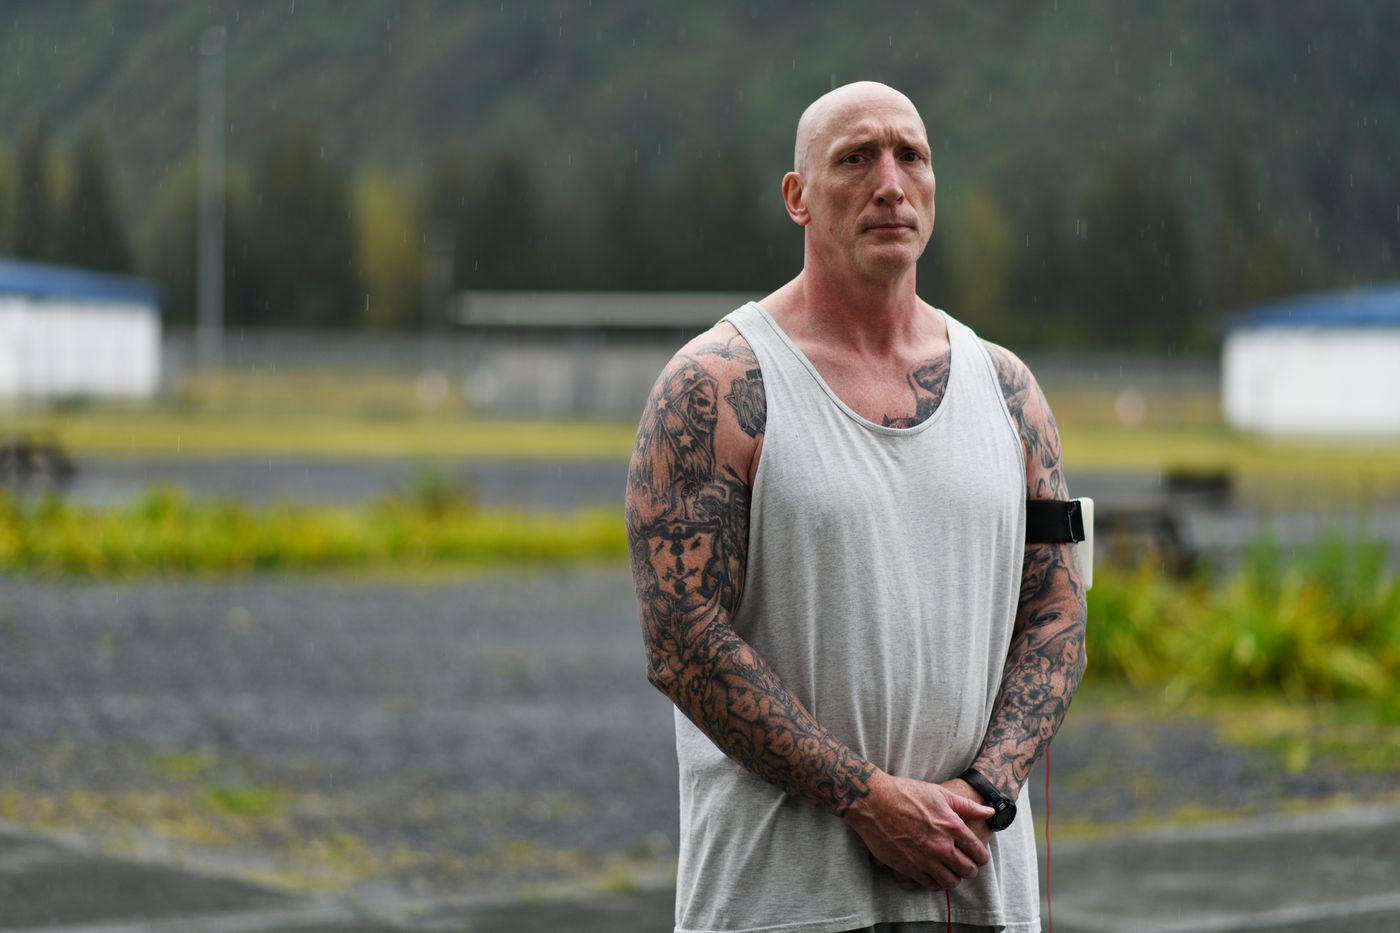 Kent Matte is one of two prisoners who provide peer mentorship to prisoners with mental health challenges, a job that pays him $1 an hour, he said. (Marc Lester / ADN)